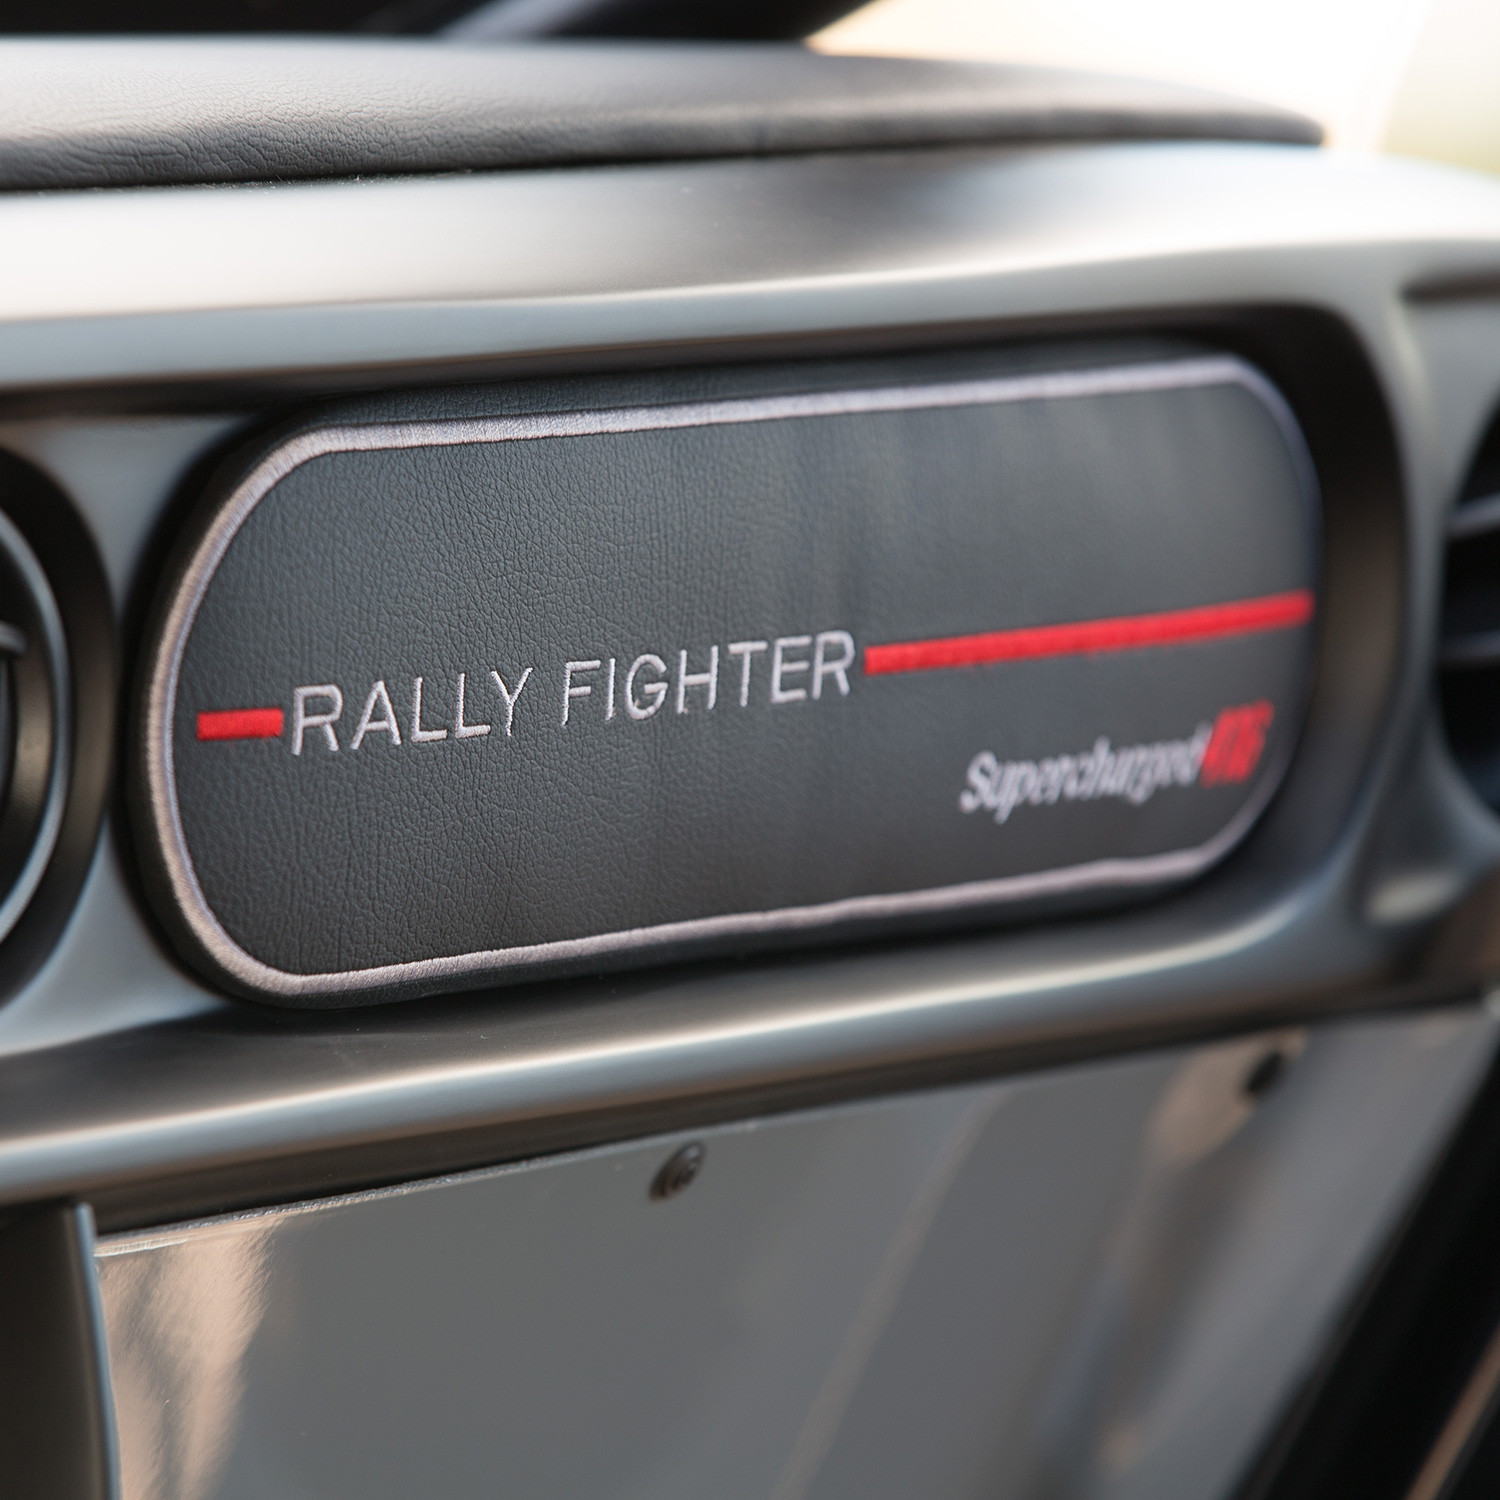 Rally Fighter Local Motors Touch of Modern